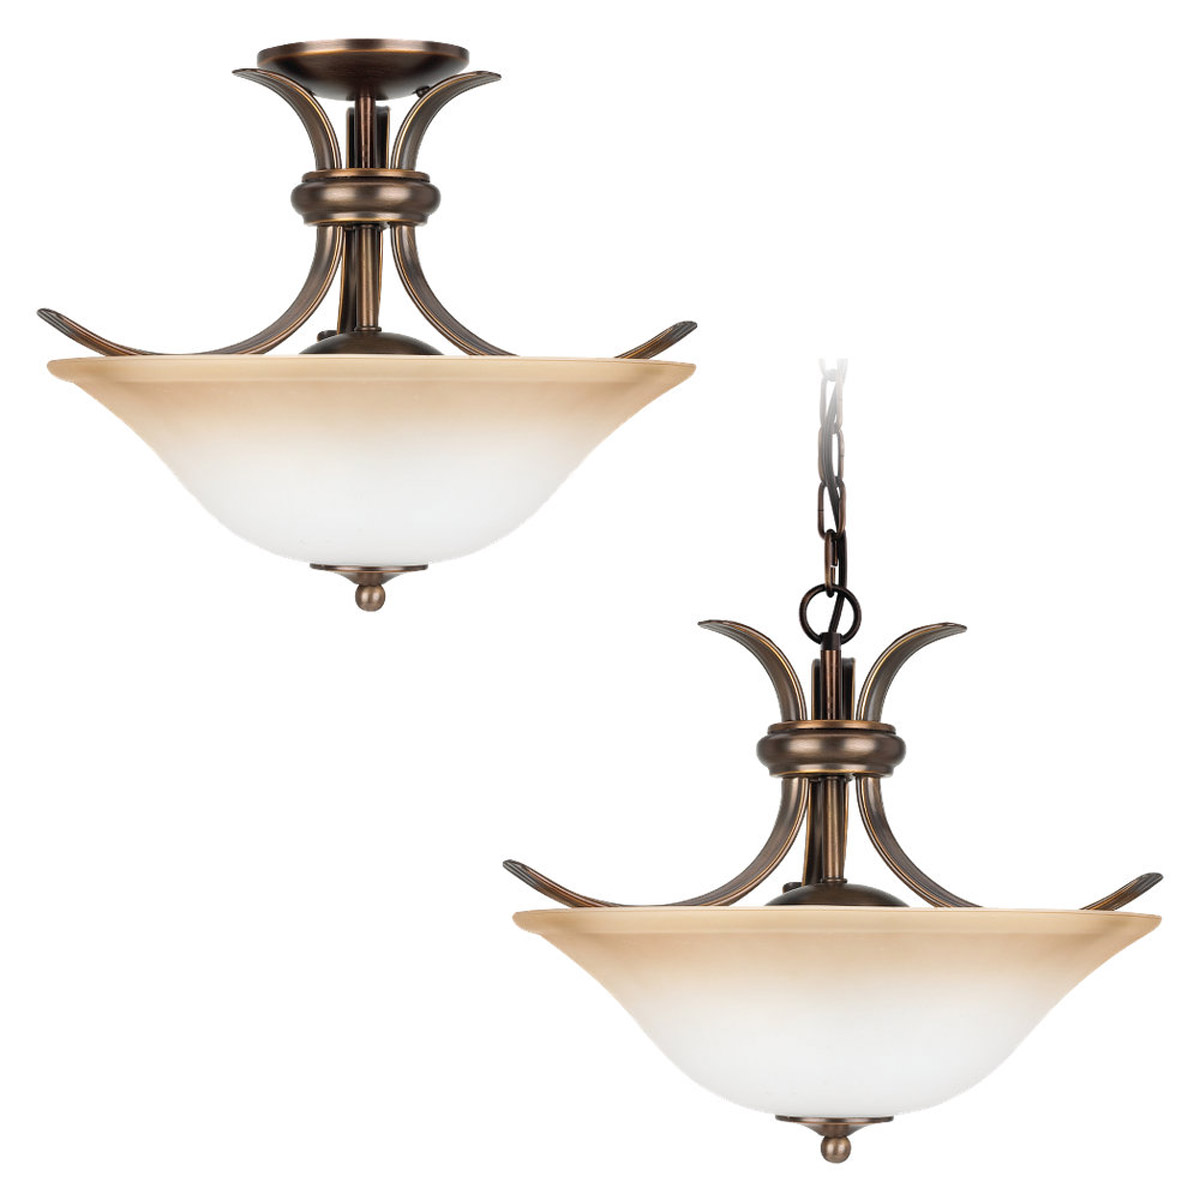 Sea Gull 75360-829 Rialto 2 Light 16 inch Russet Bronze Semi-Flush Mount Ceiling Light in Ginger Glass photo